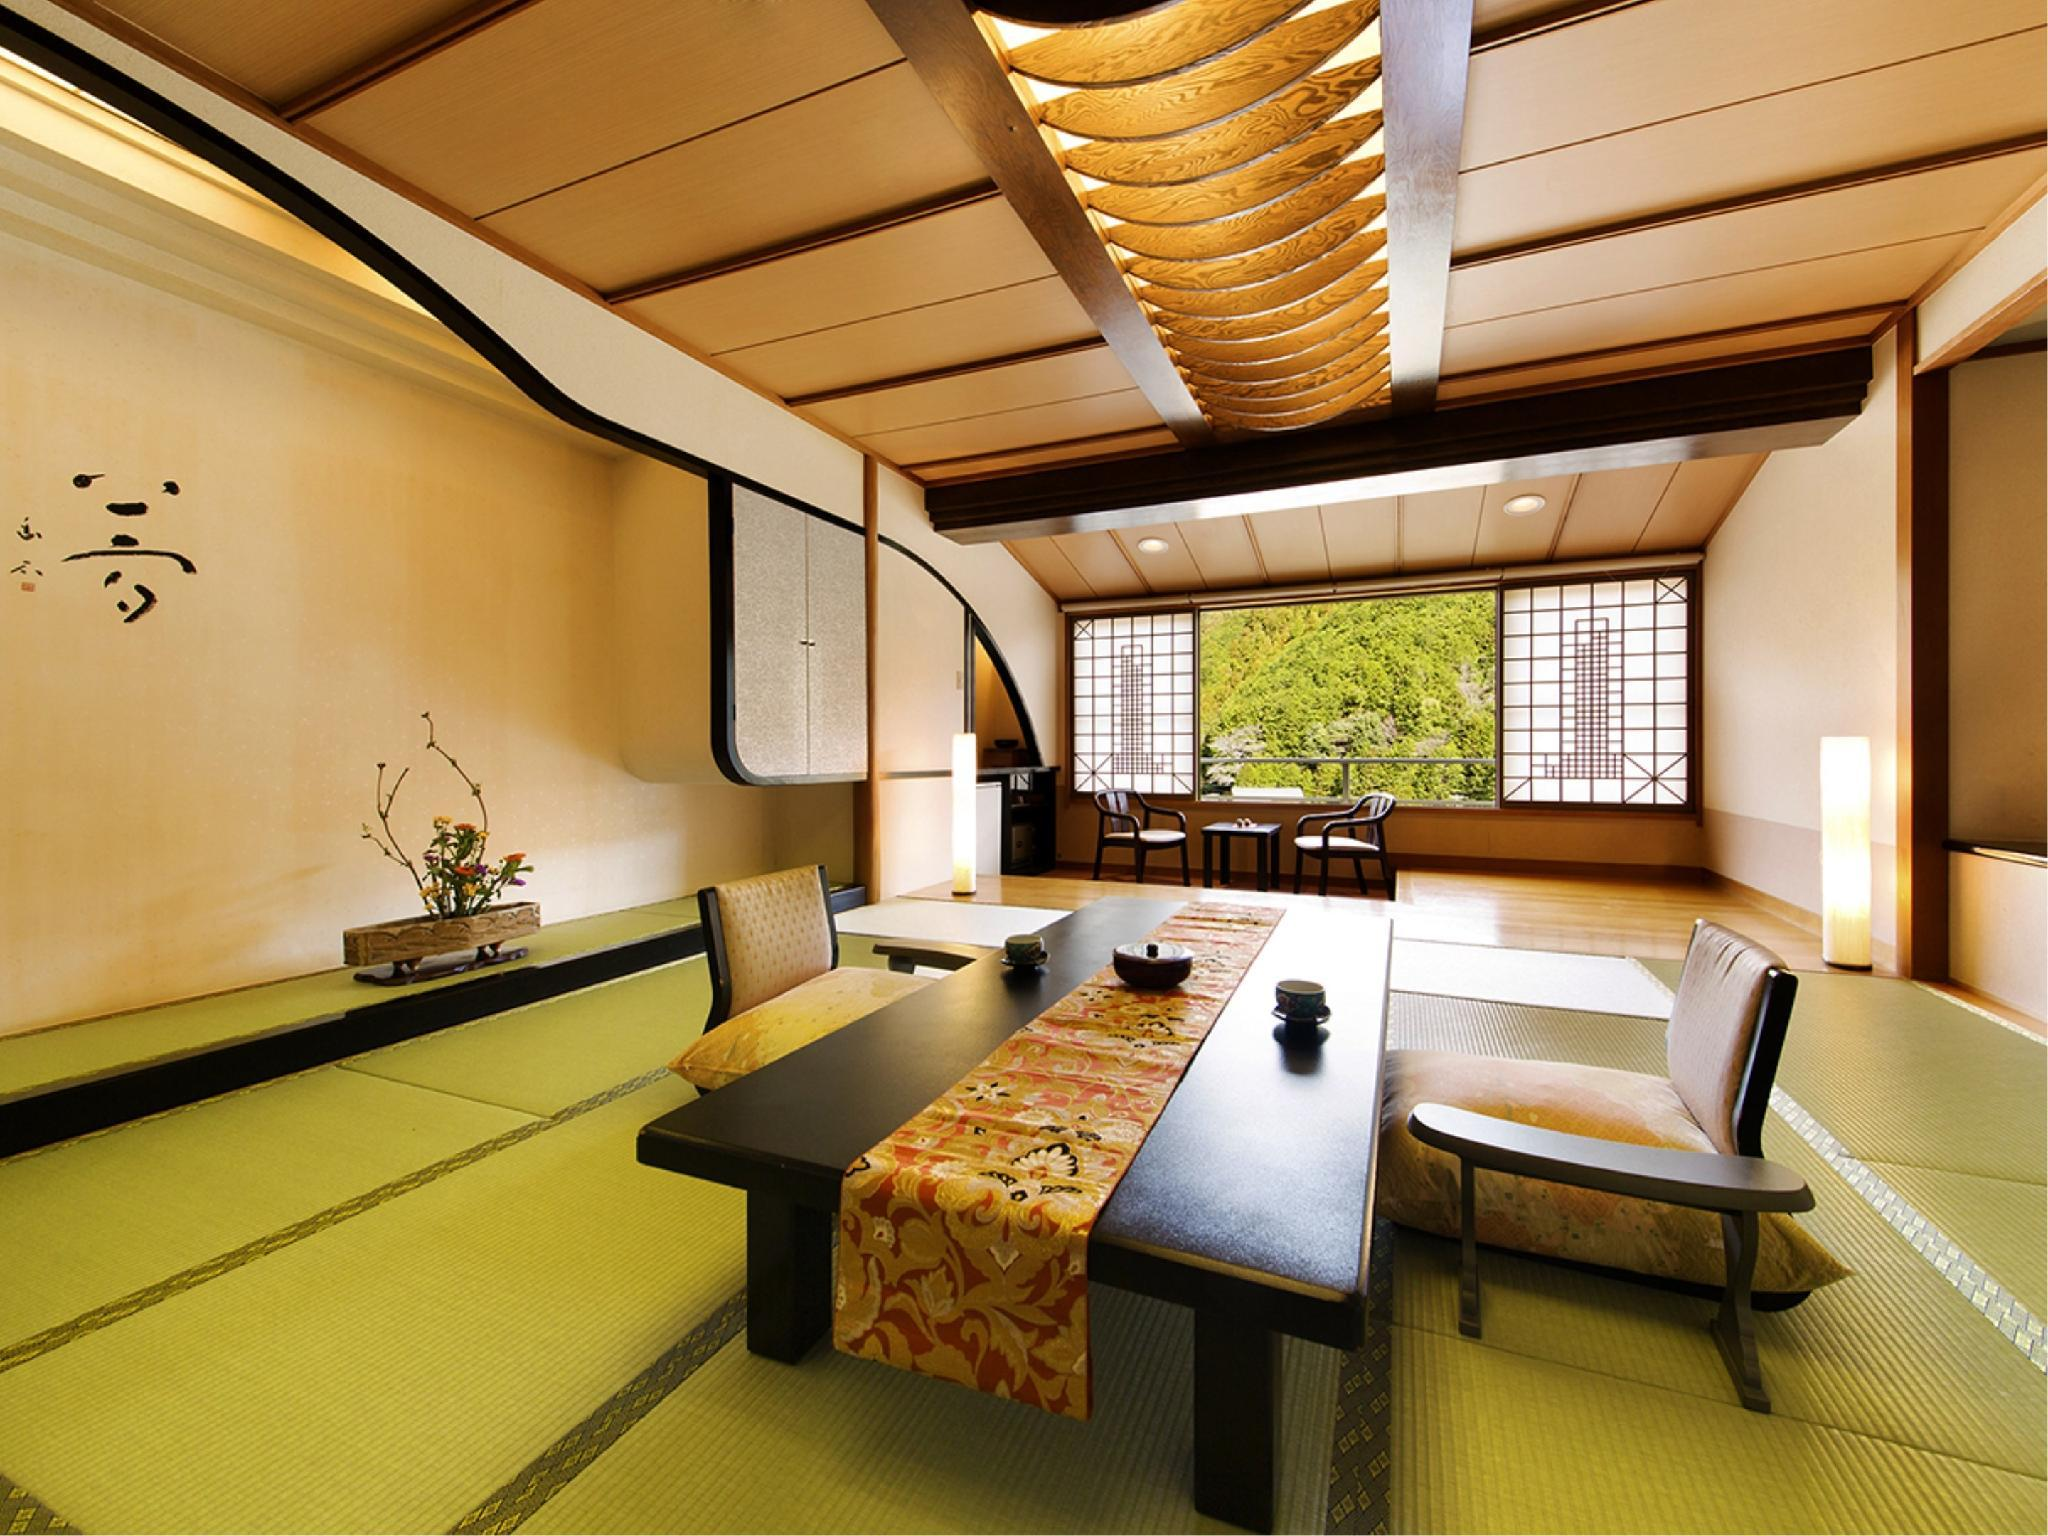 【新館特別室◇夢の館】12.5+6畳~1日1室限定の贅沢客室 (Special Japanese-style Room (New Building Yume-no-Yakata Wing))